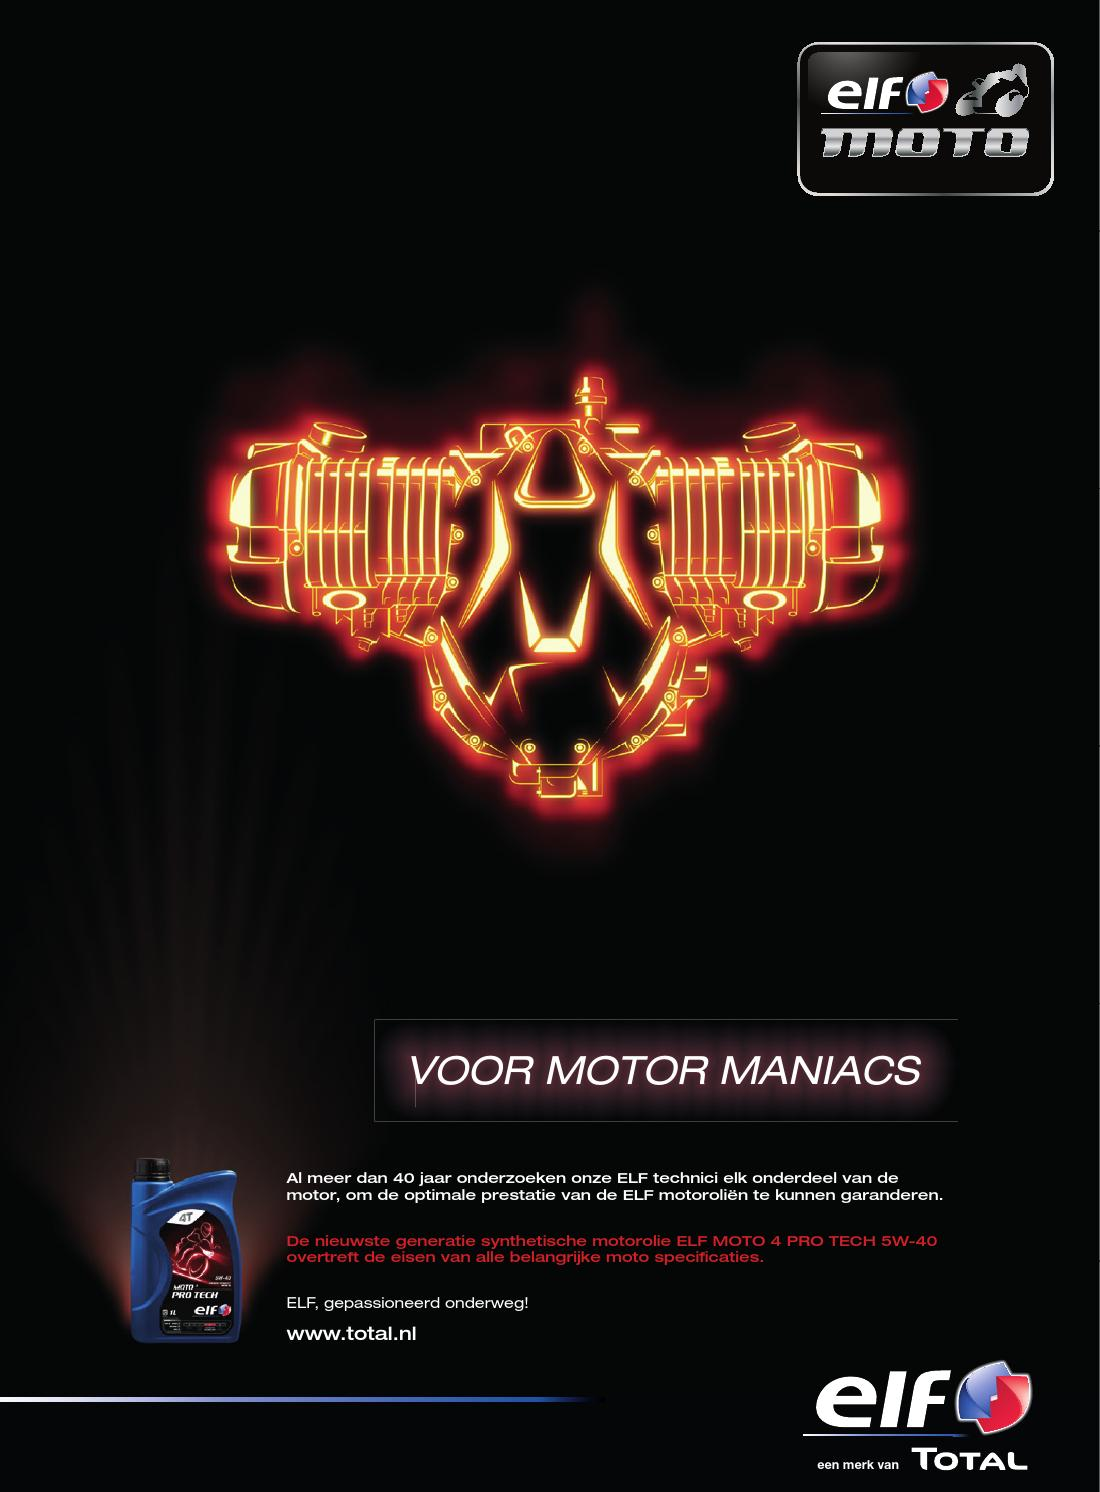 Motorolie Specificaties Motodrive 1 2015 Issuu By Xtra Digital Agency Issuu